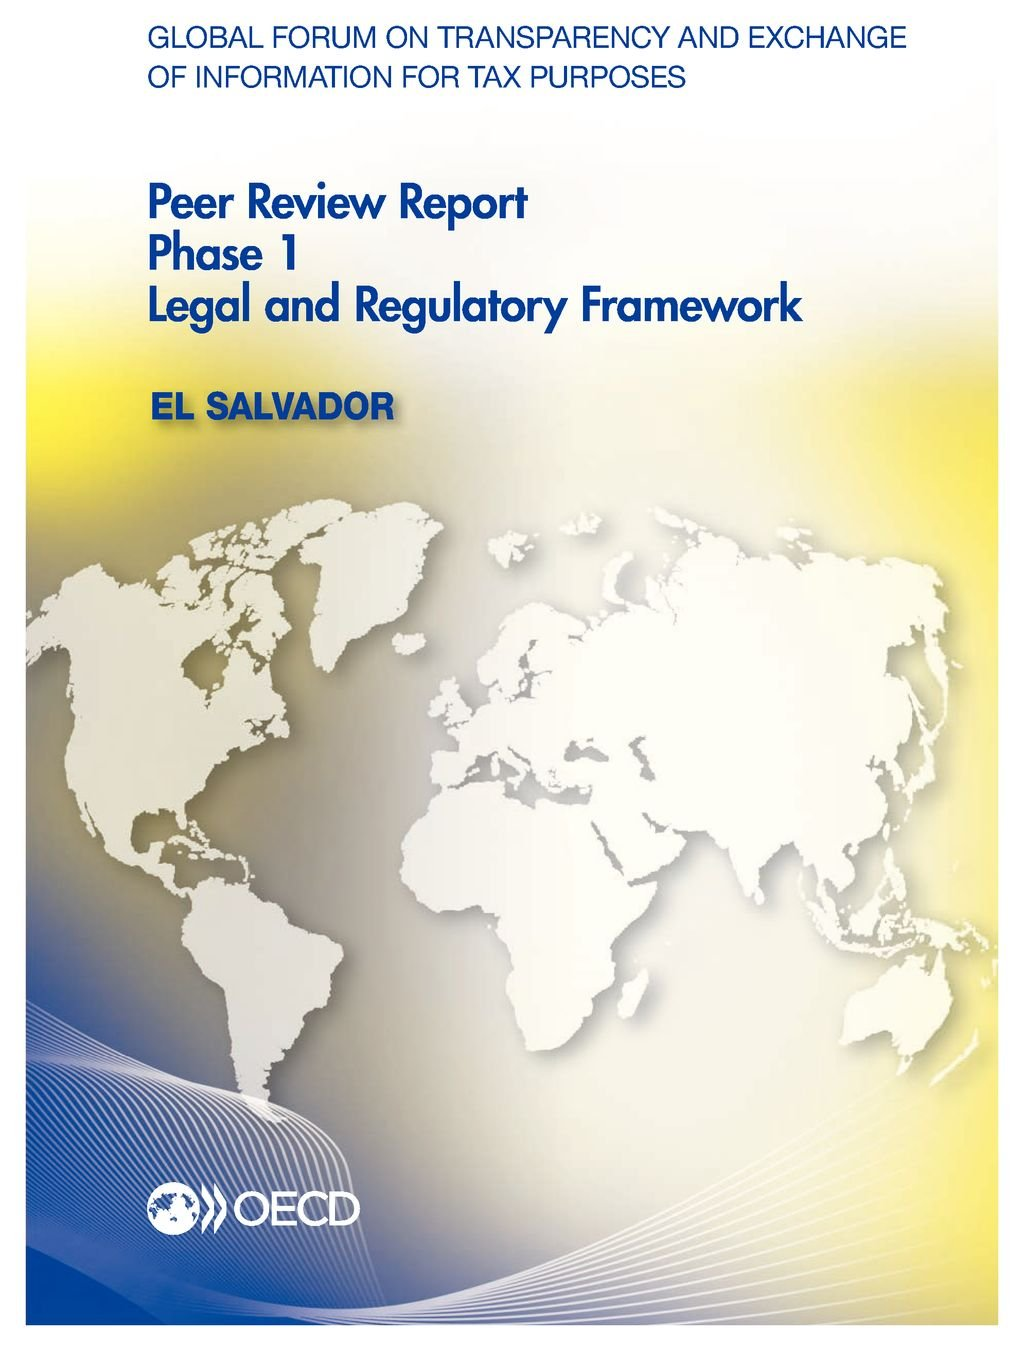 Download Global Forum on Transparency and Exchange of Information for Tax Purposes Peer Reviews: El Salvador 2015: Phase 1: Legal and Regulatory Framework ebook